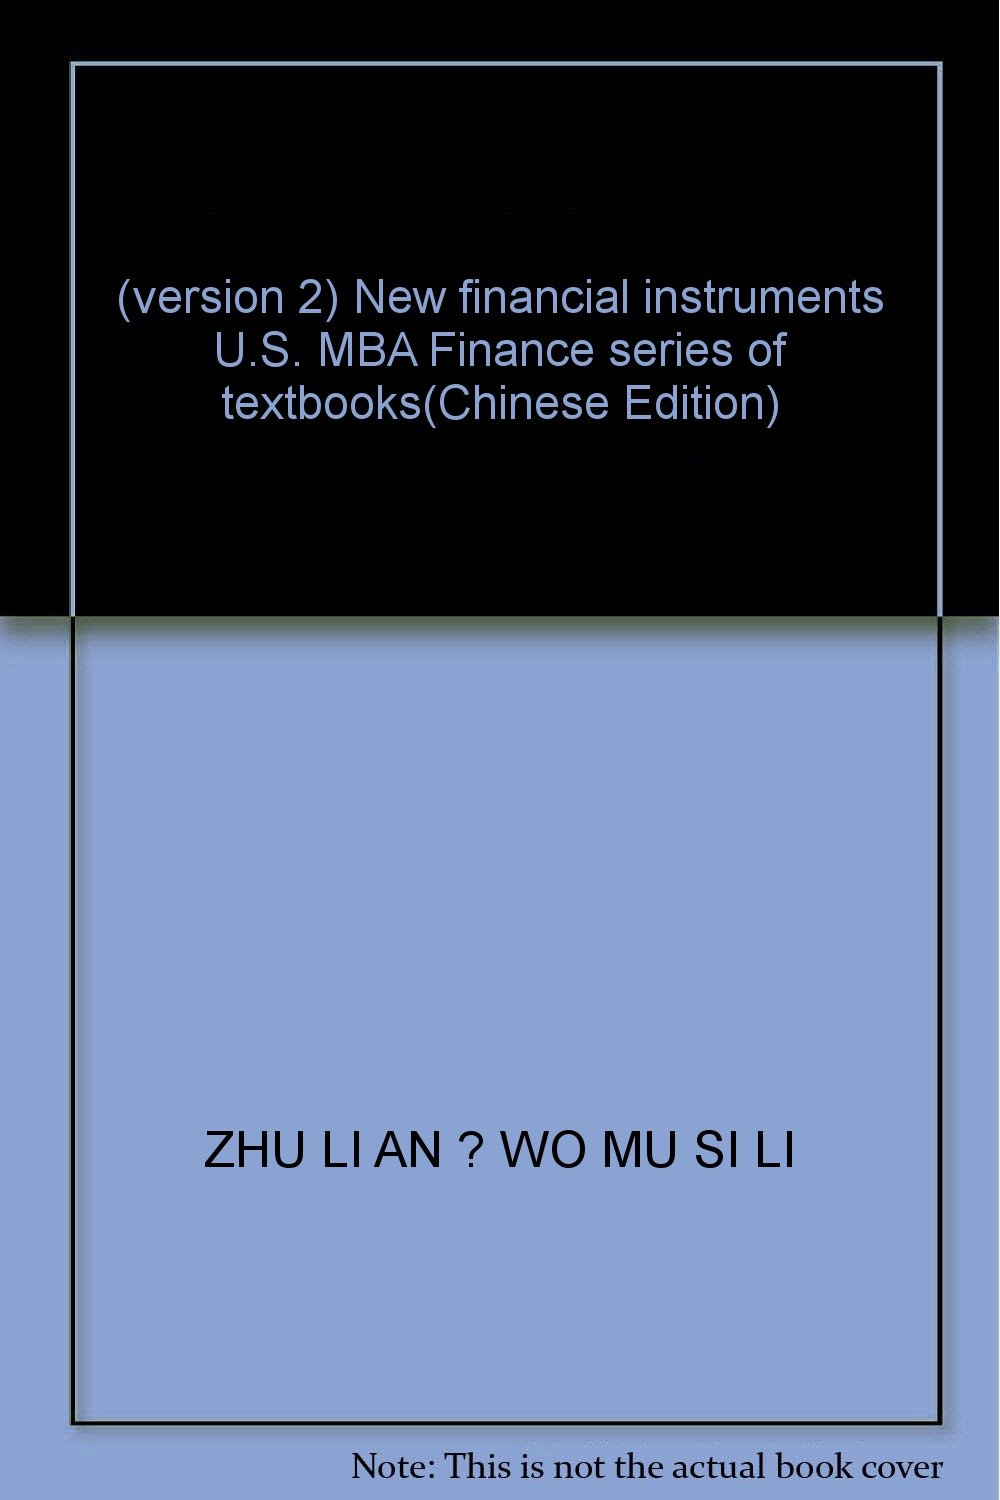 Download (version 2) New financial instruments U.S. MBA Finance series of textbooks(Chinese Edition) PDF